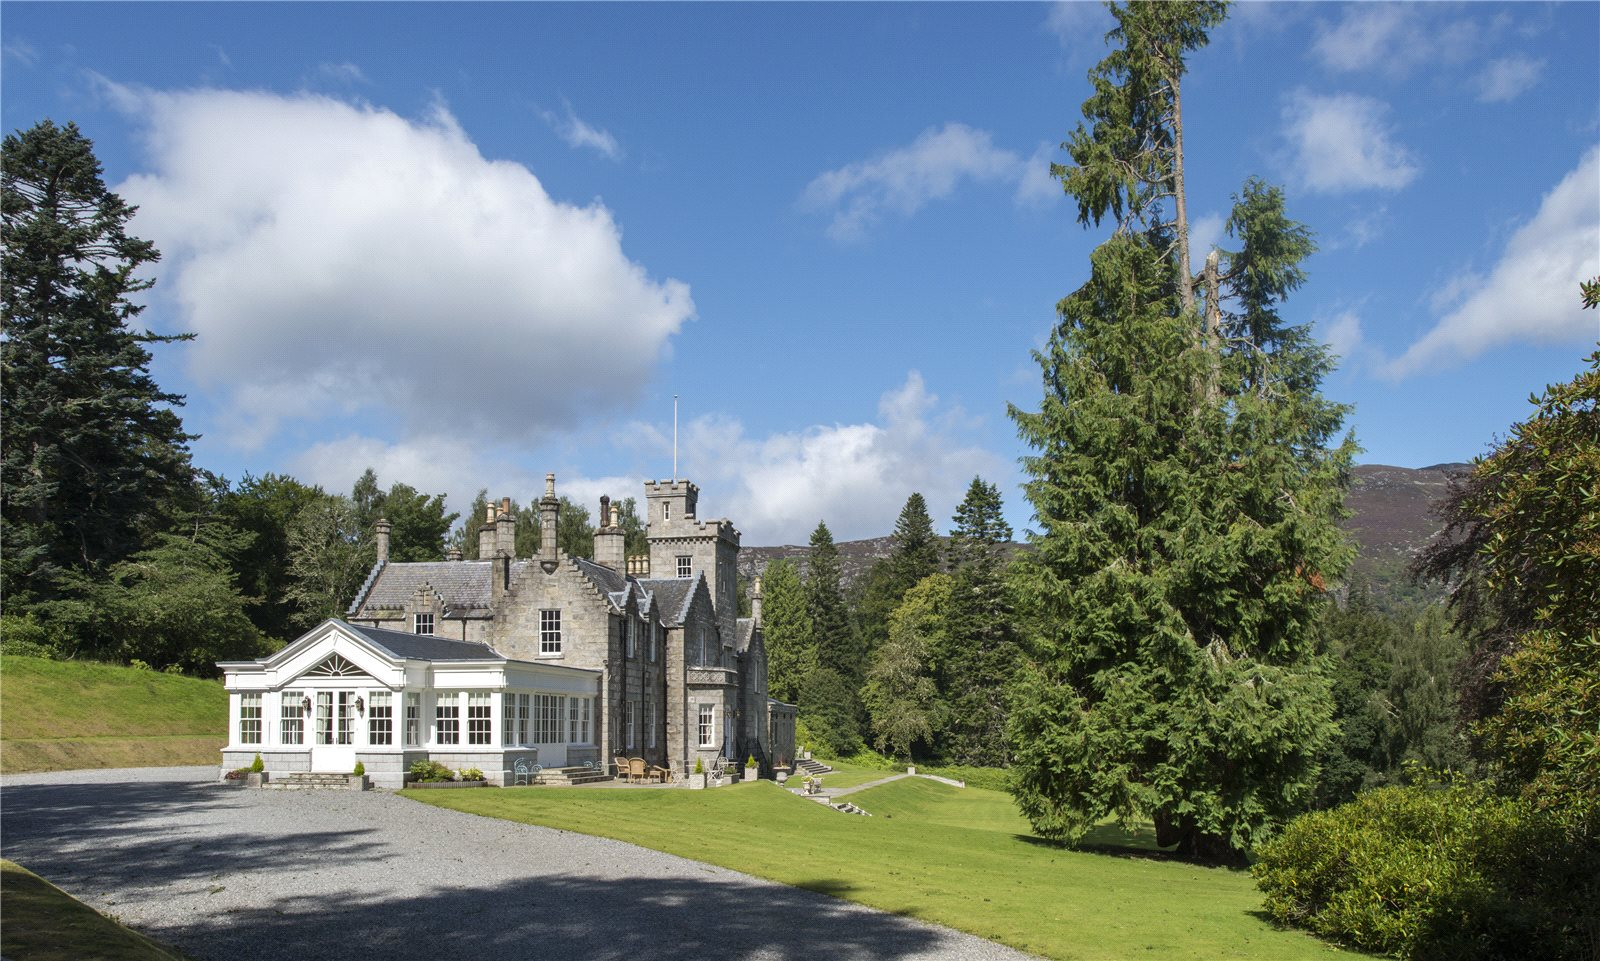 Appartements / Flats pour l Vente à Newtonmore, Inverness-Shire, PH20 Inverness Shire, Scotland